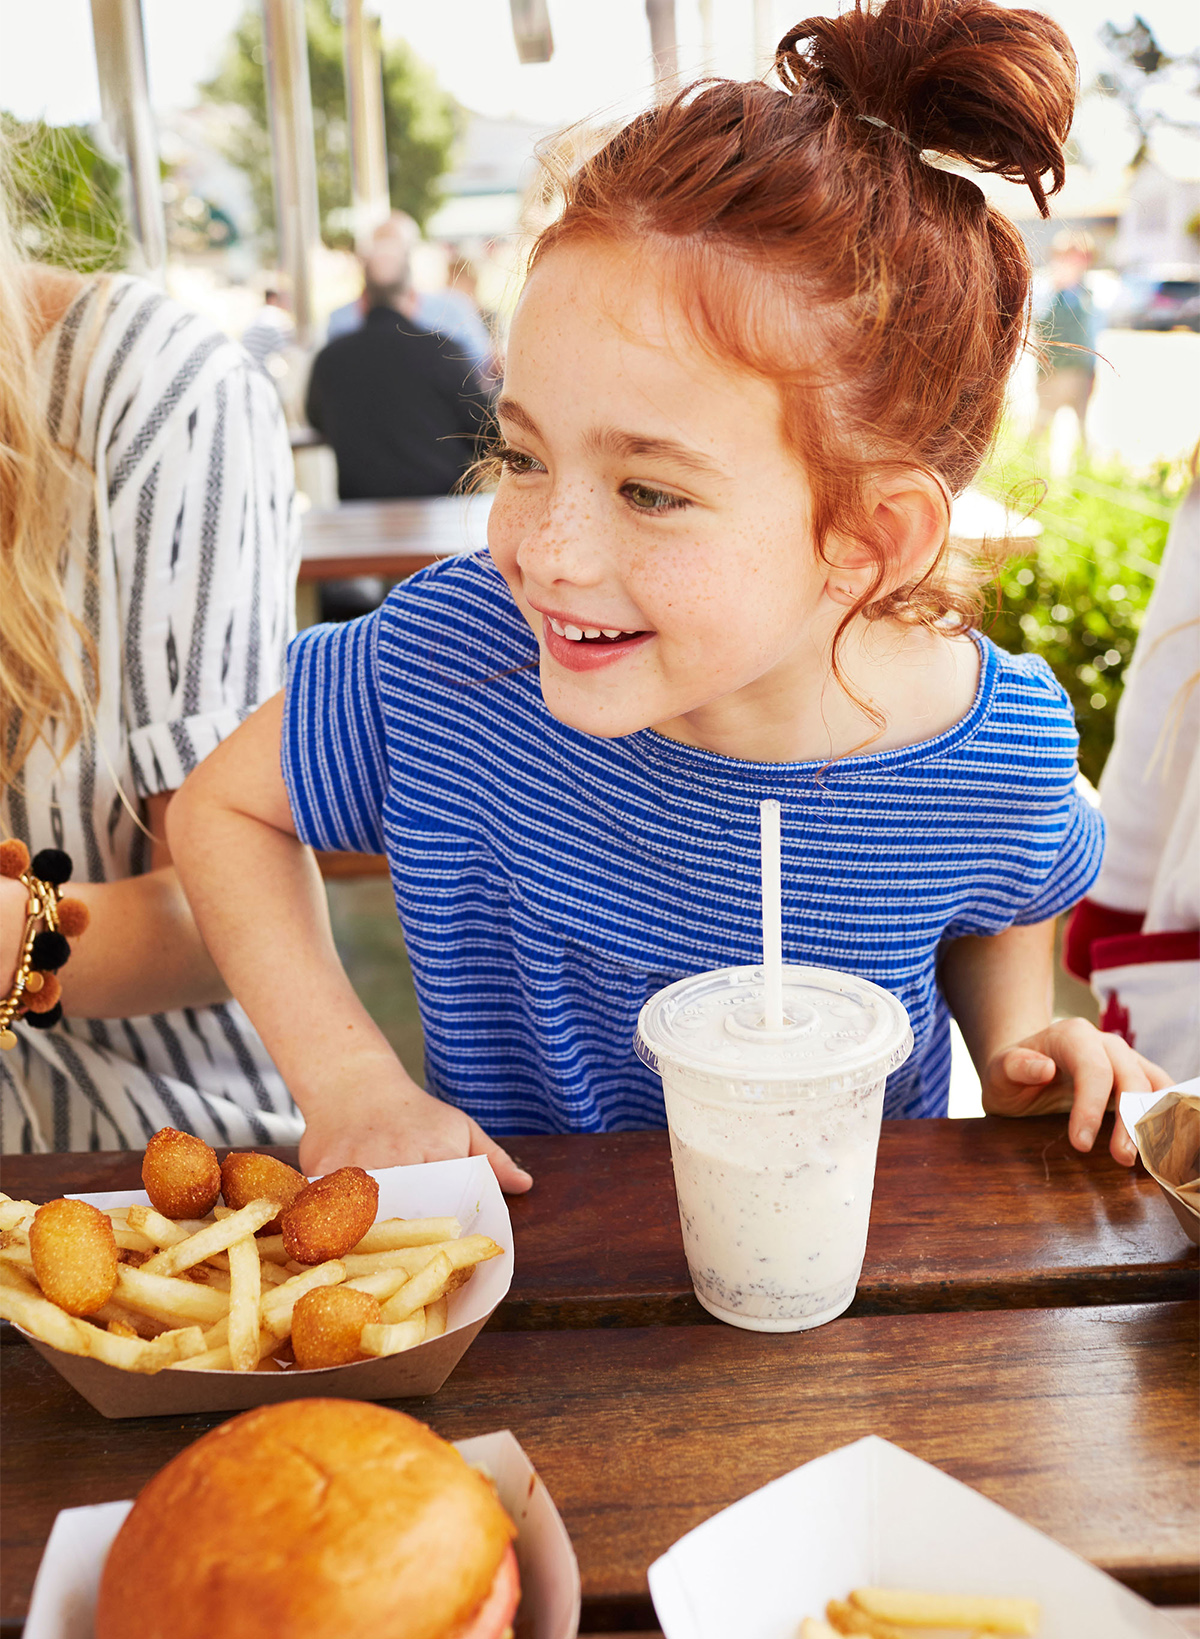 Little red-headed girl at restaurant table smiling